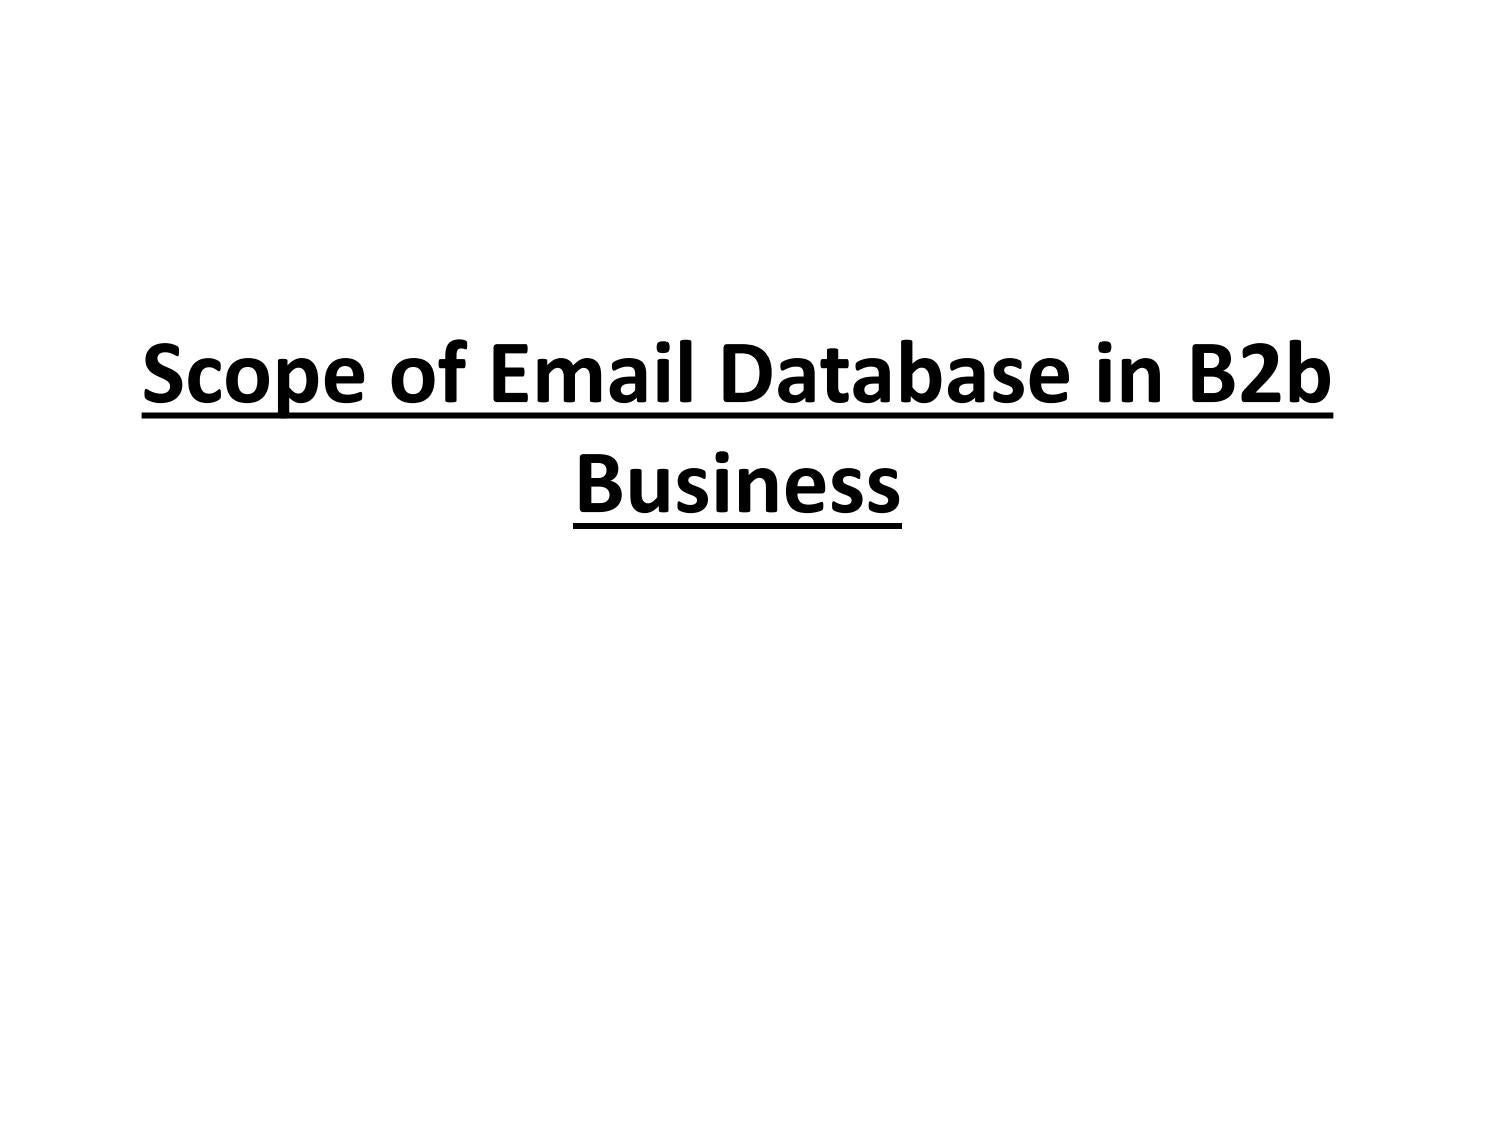 Scope of Email Database in B2b Business